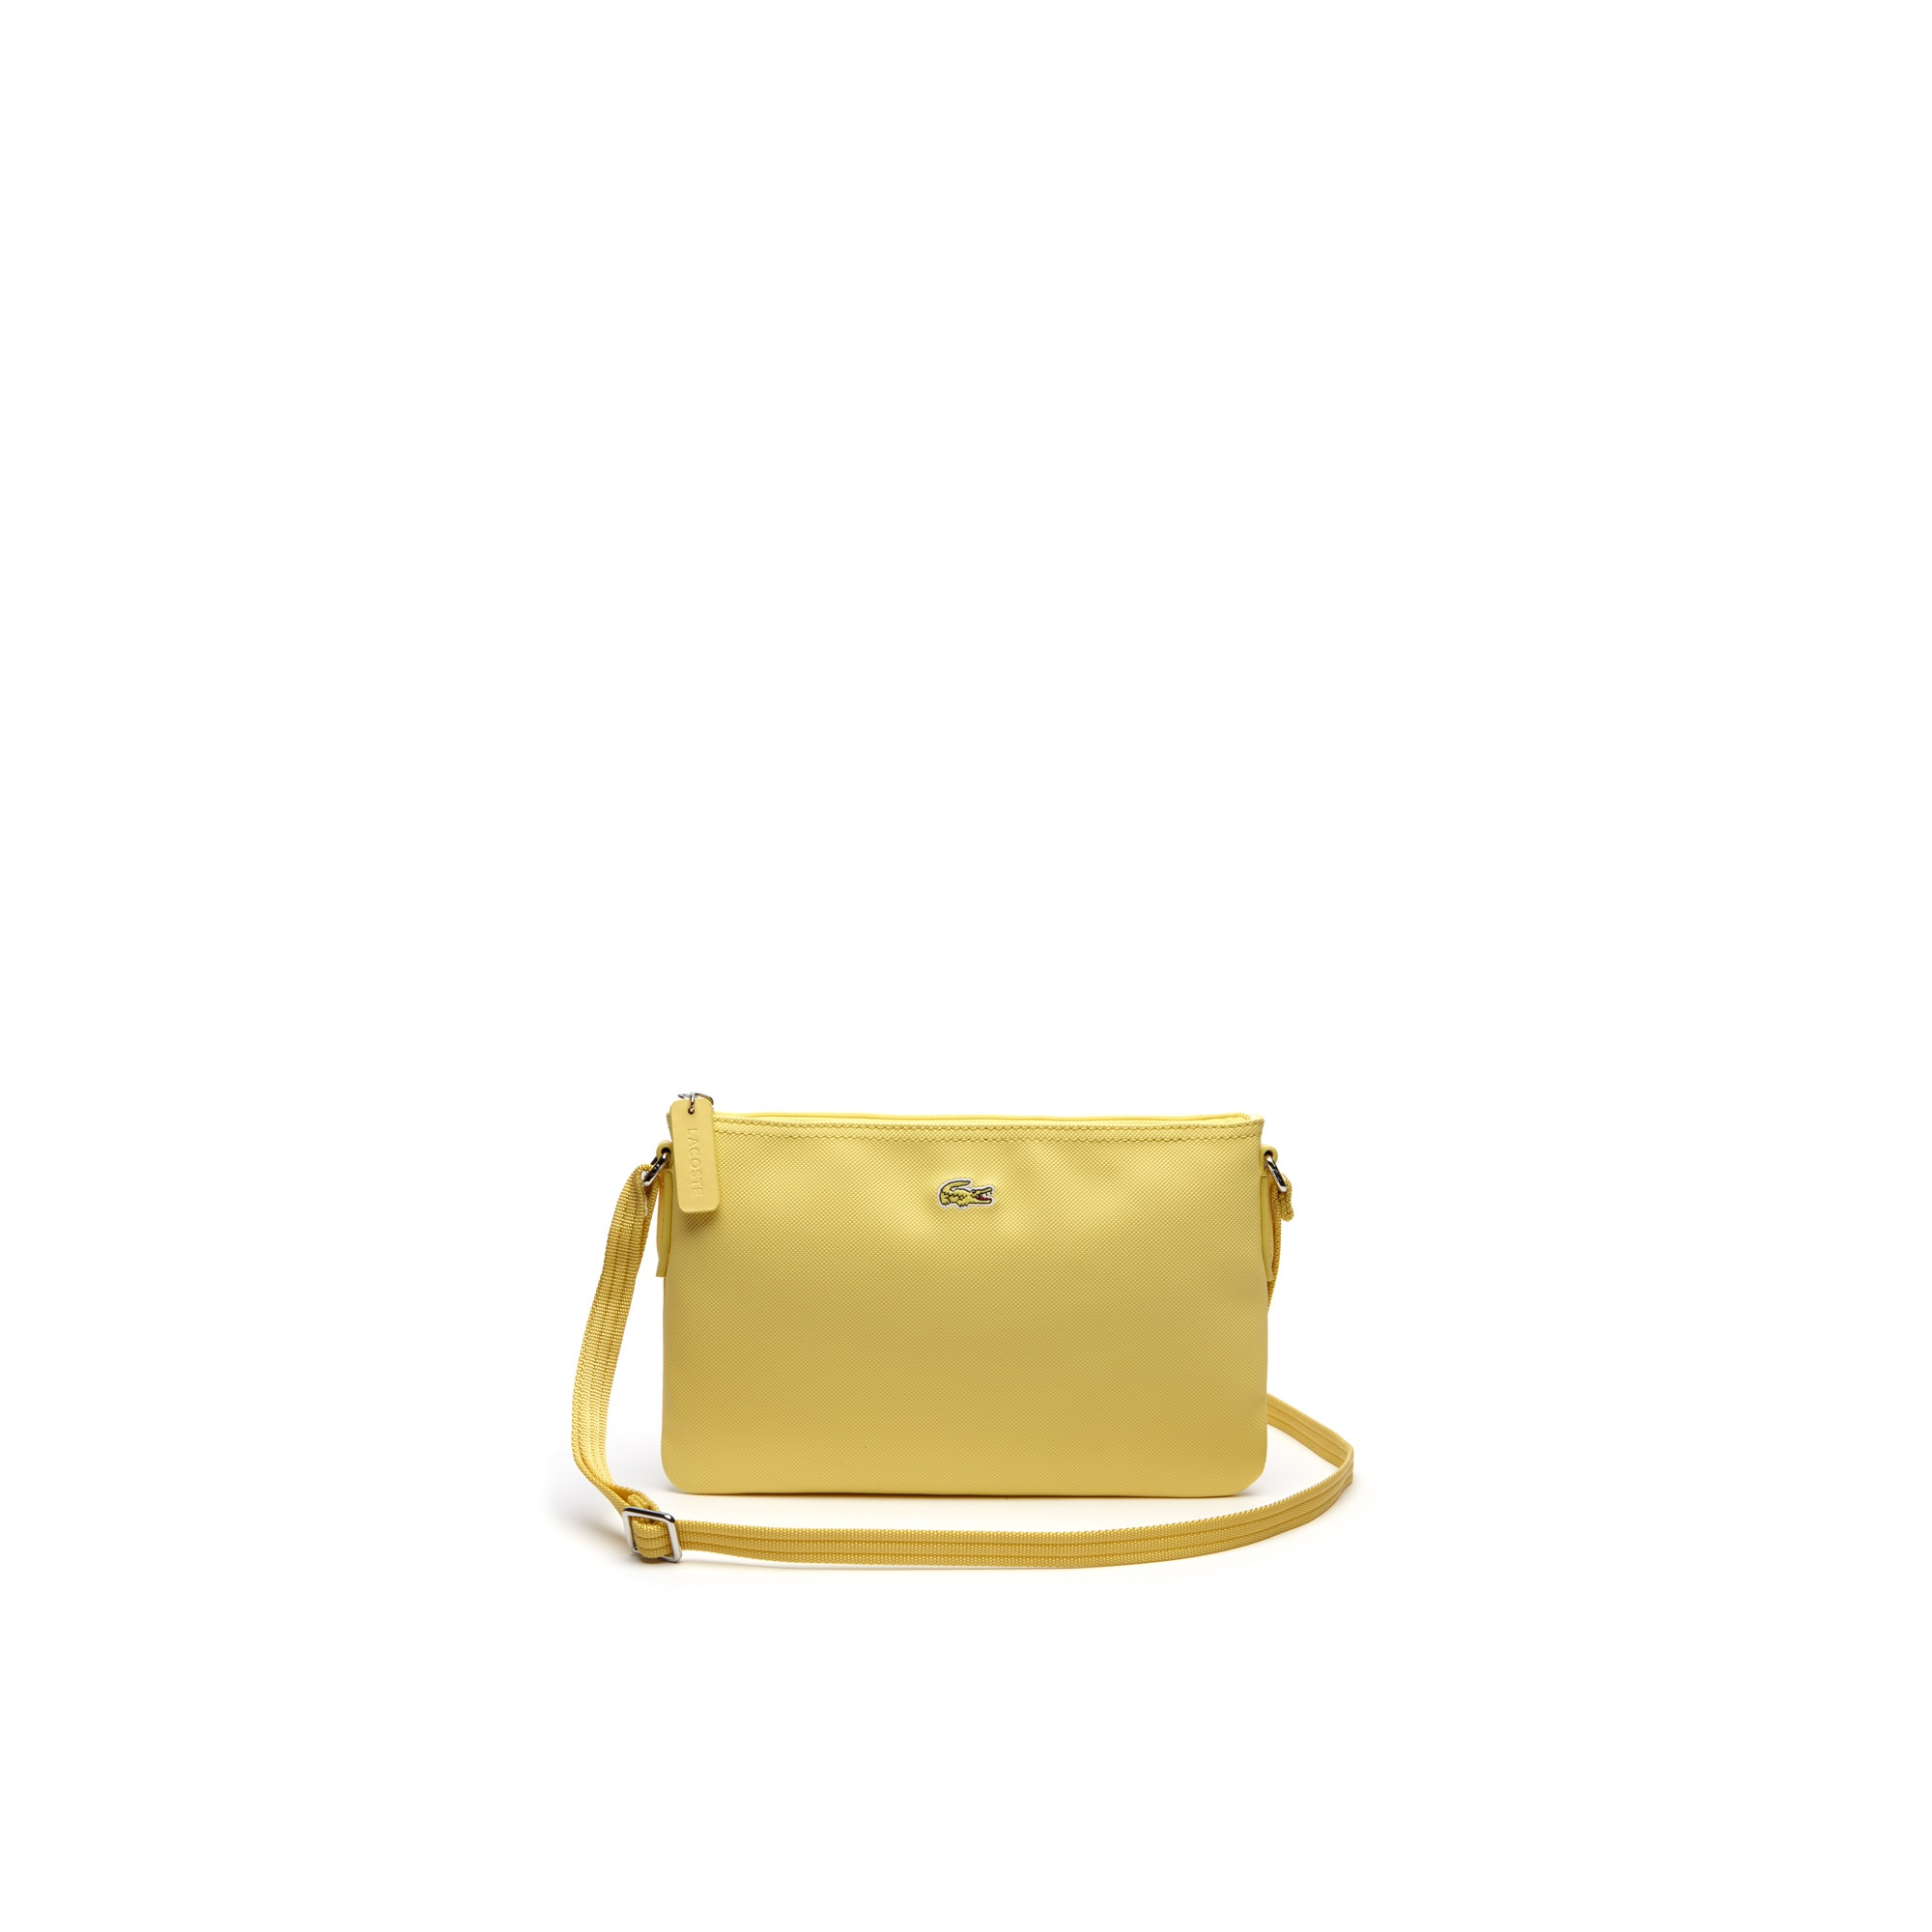 Women's L.12.12 Concept Flat Crossover Bag